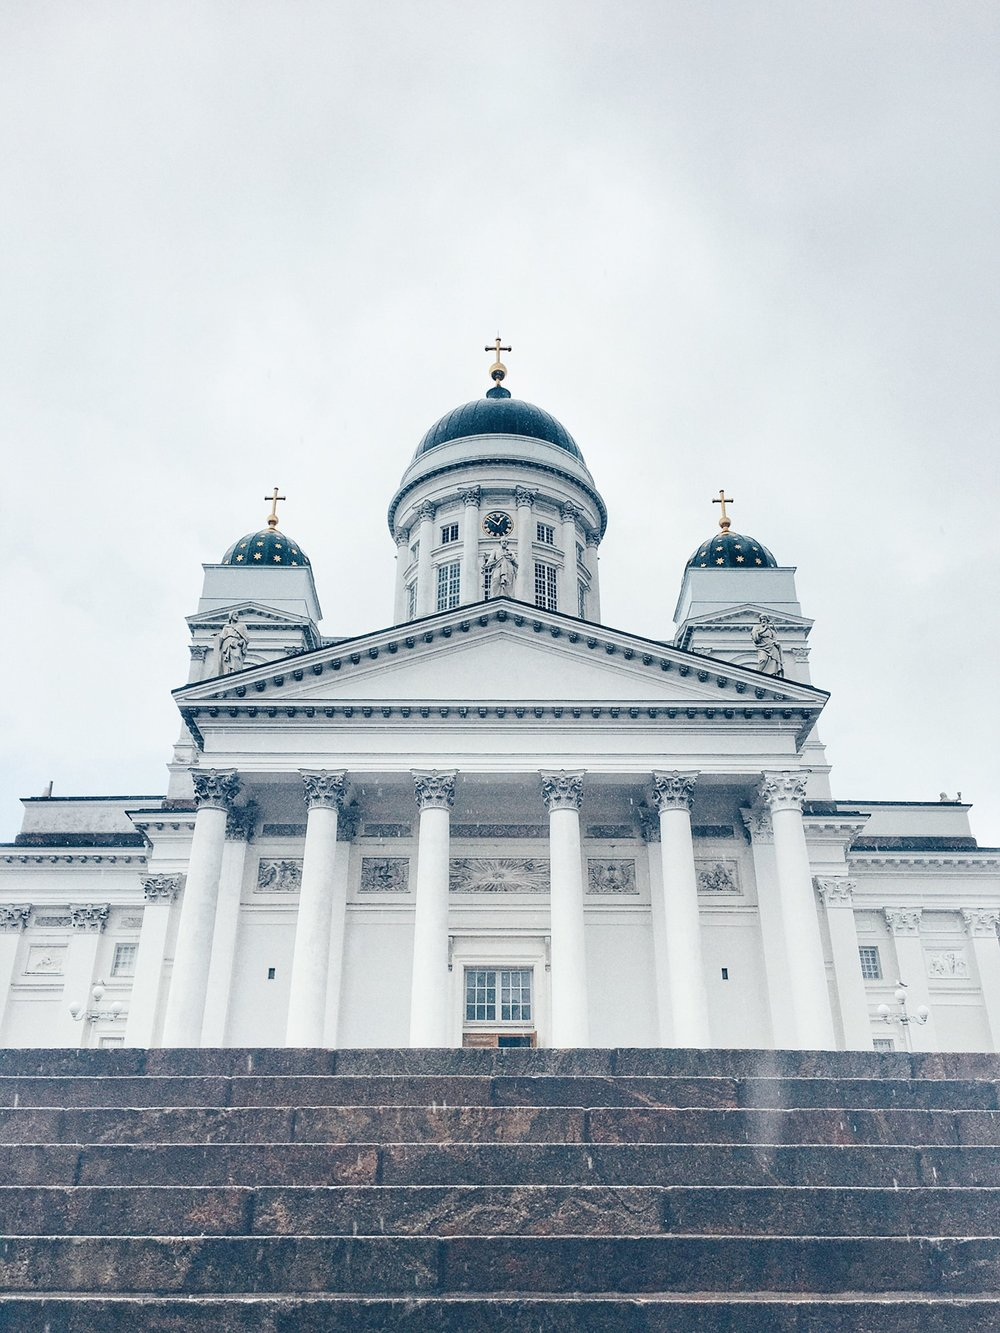 Helsinki Cathedral was originally built as a tribute for tsar Nikolas I of Russia (Helsinki, Finland)